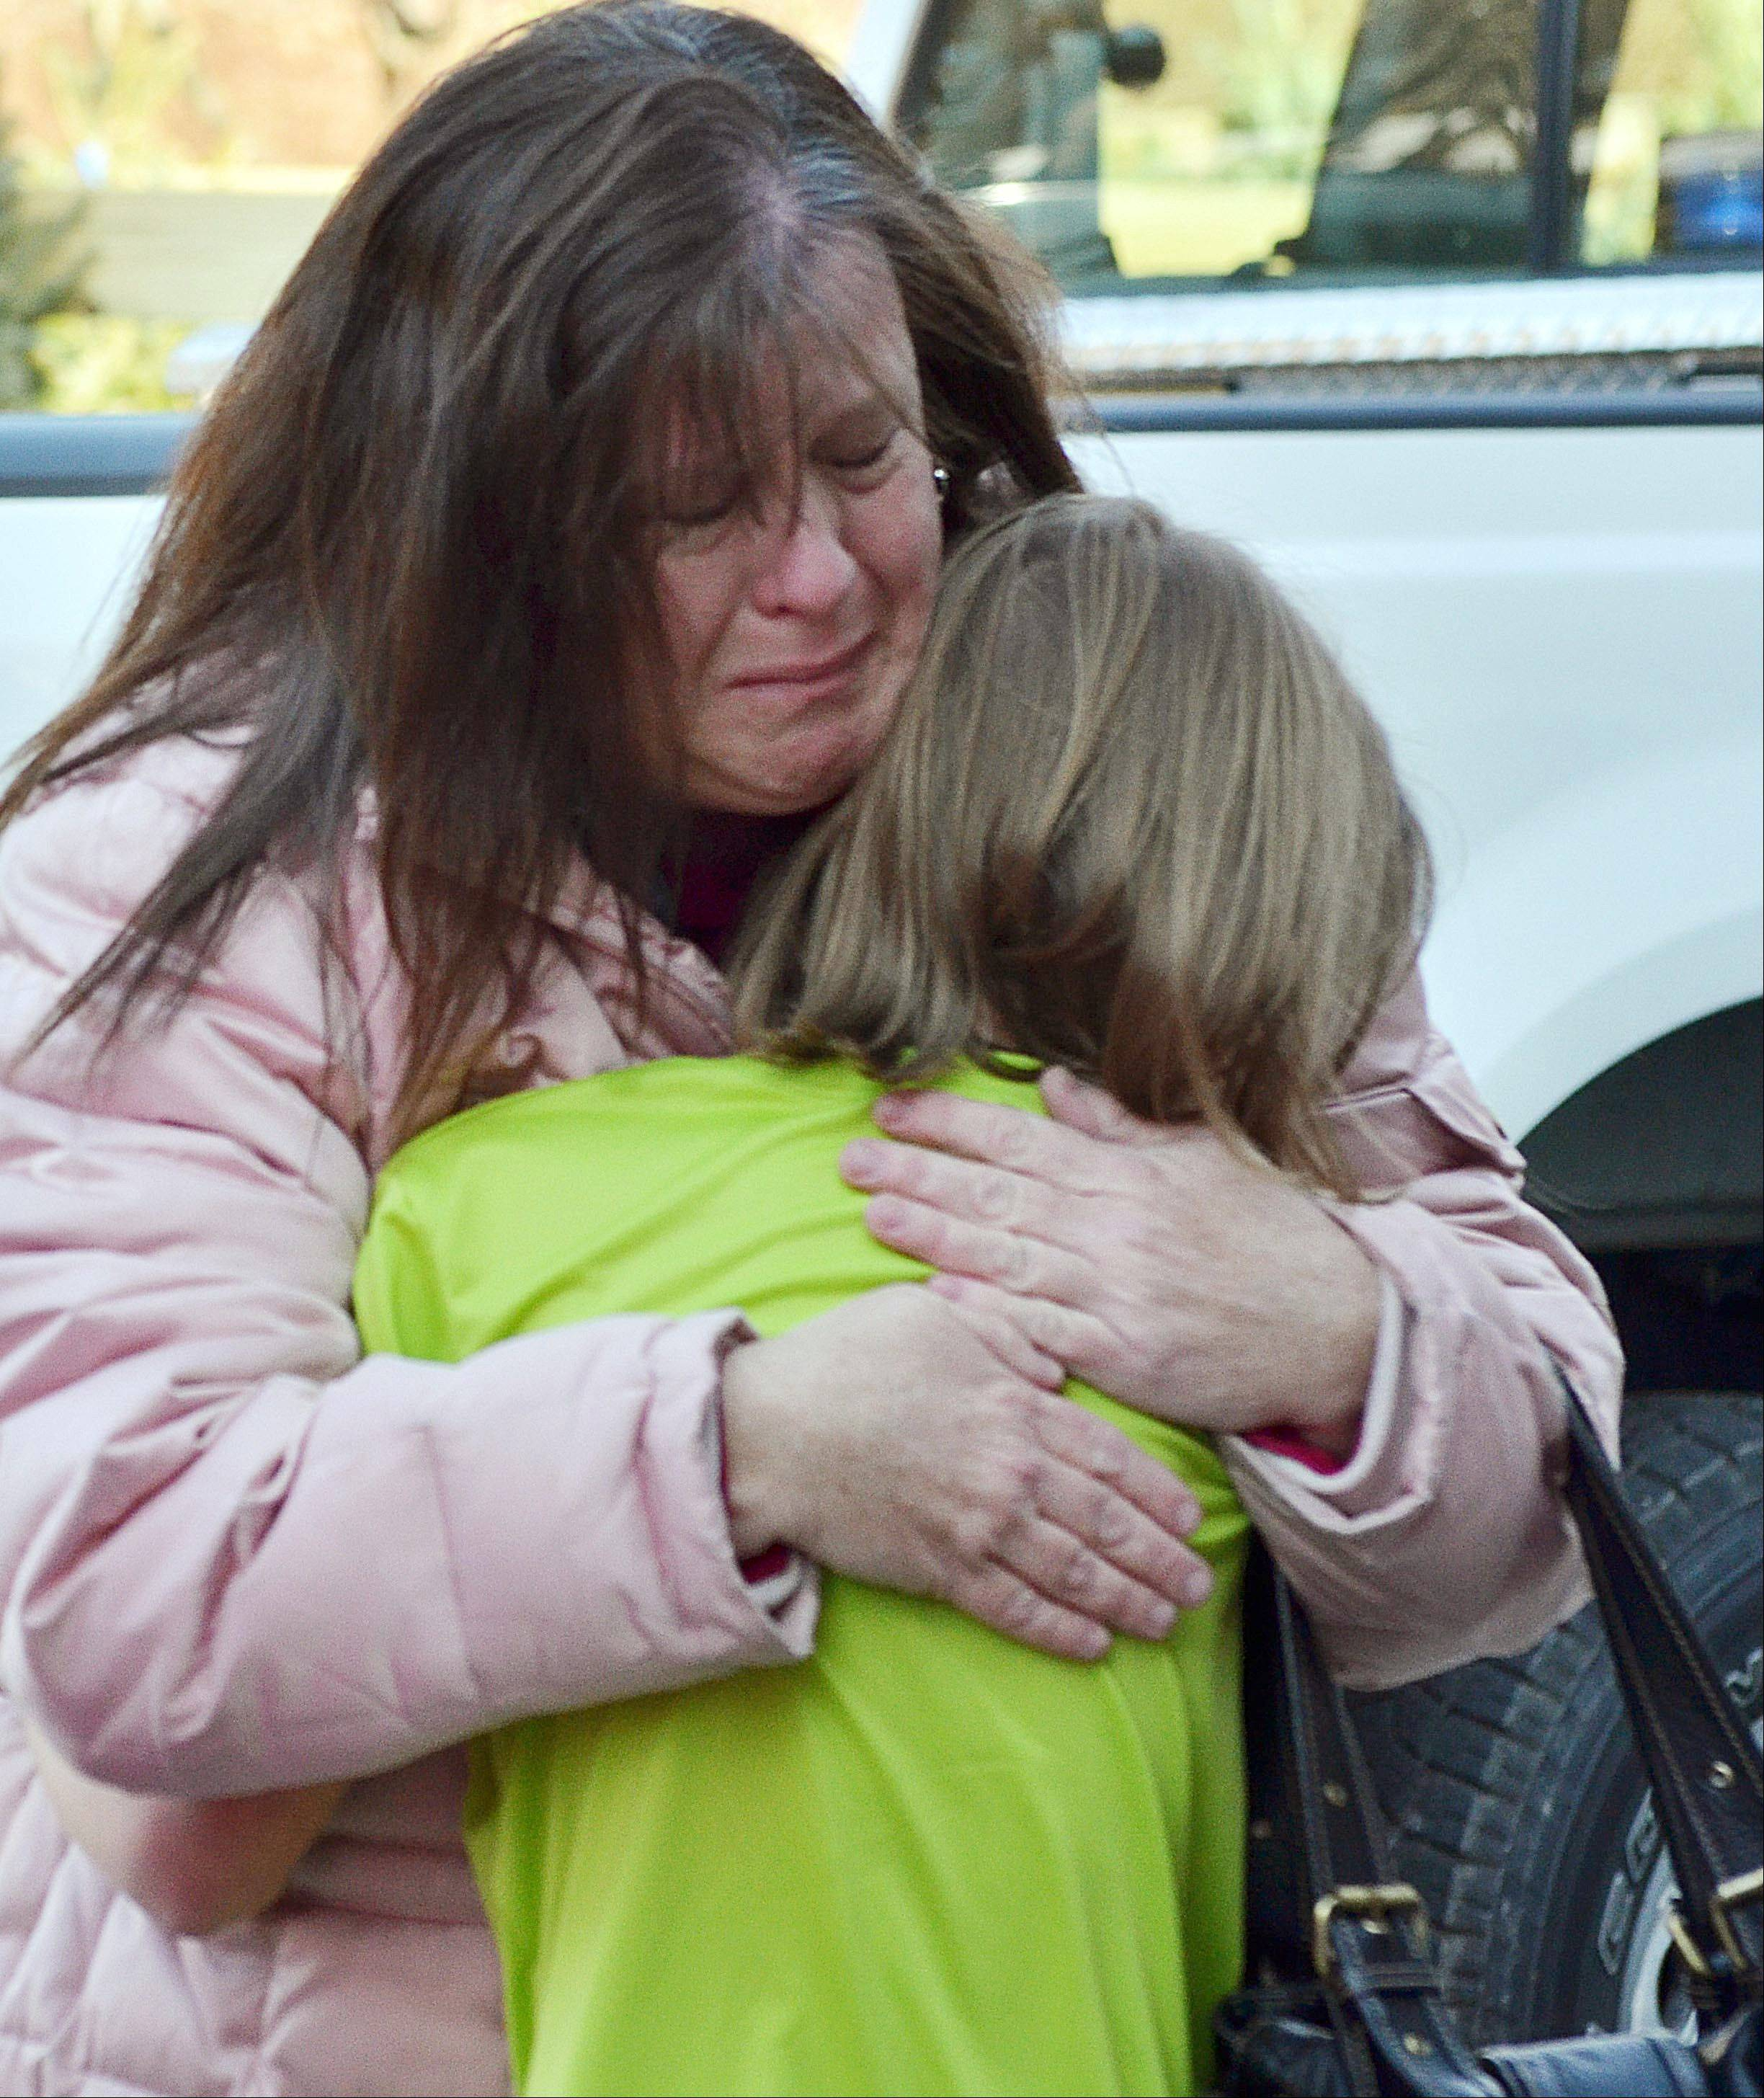 A mother hugs her daughter following a shooting at the Sandy Hook Elementary School in Newtown, Conn., about 60 miles (96 kilometers) northeast of New York City, Friday, Dec. 14, 2012. An official with knowledge of Friday's shooting said 27 people were dead, including 18 children. It was the worst school shooting in the country's history.